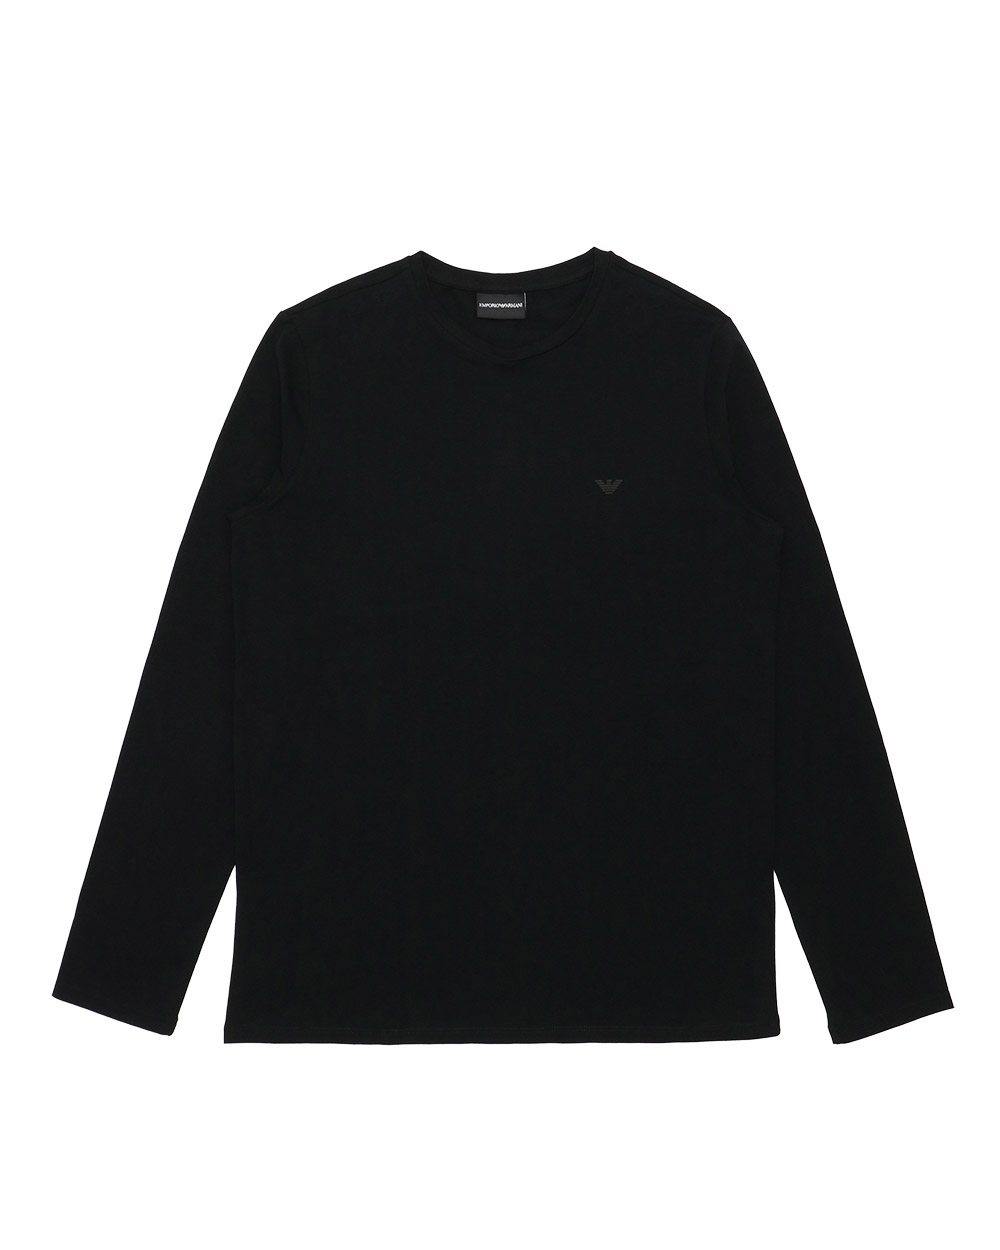 Cotton Long-Sleeved Round Neck T-Shirt